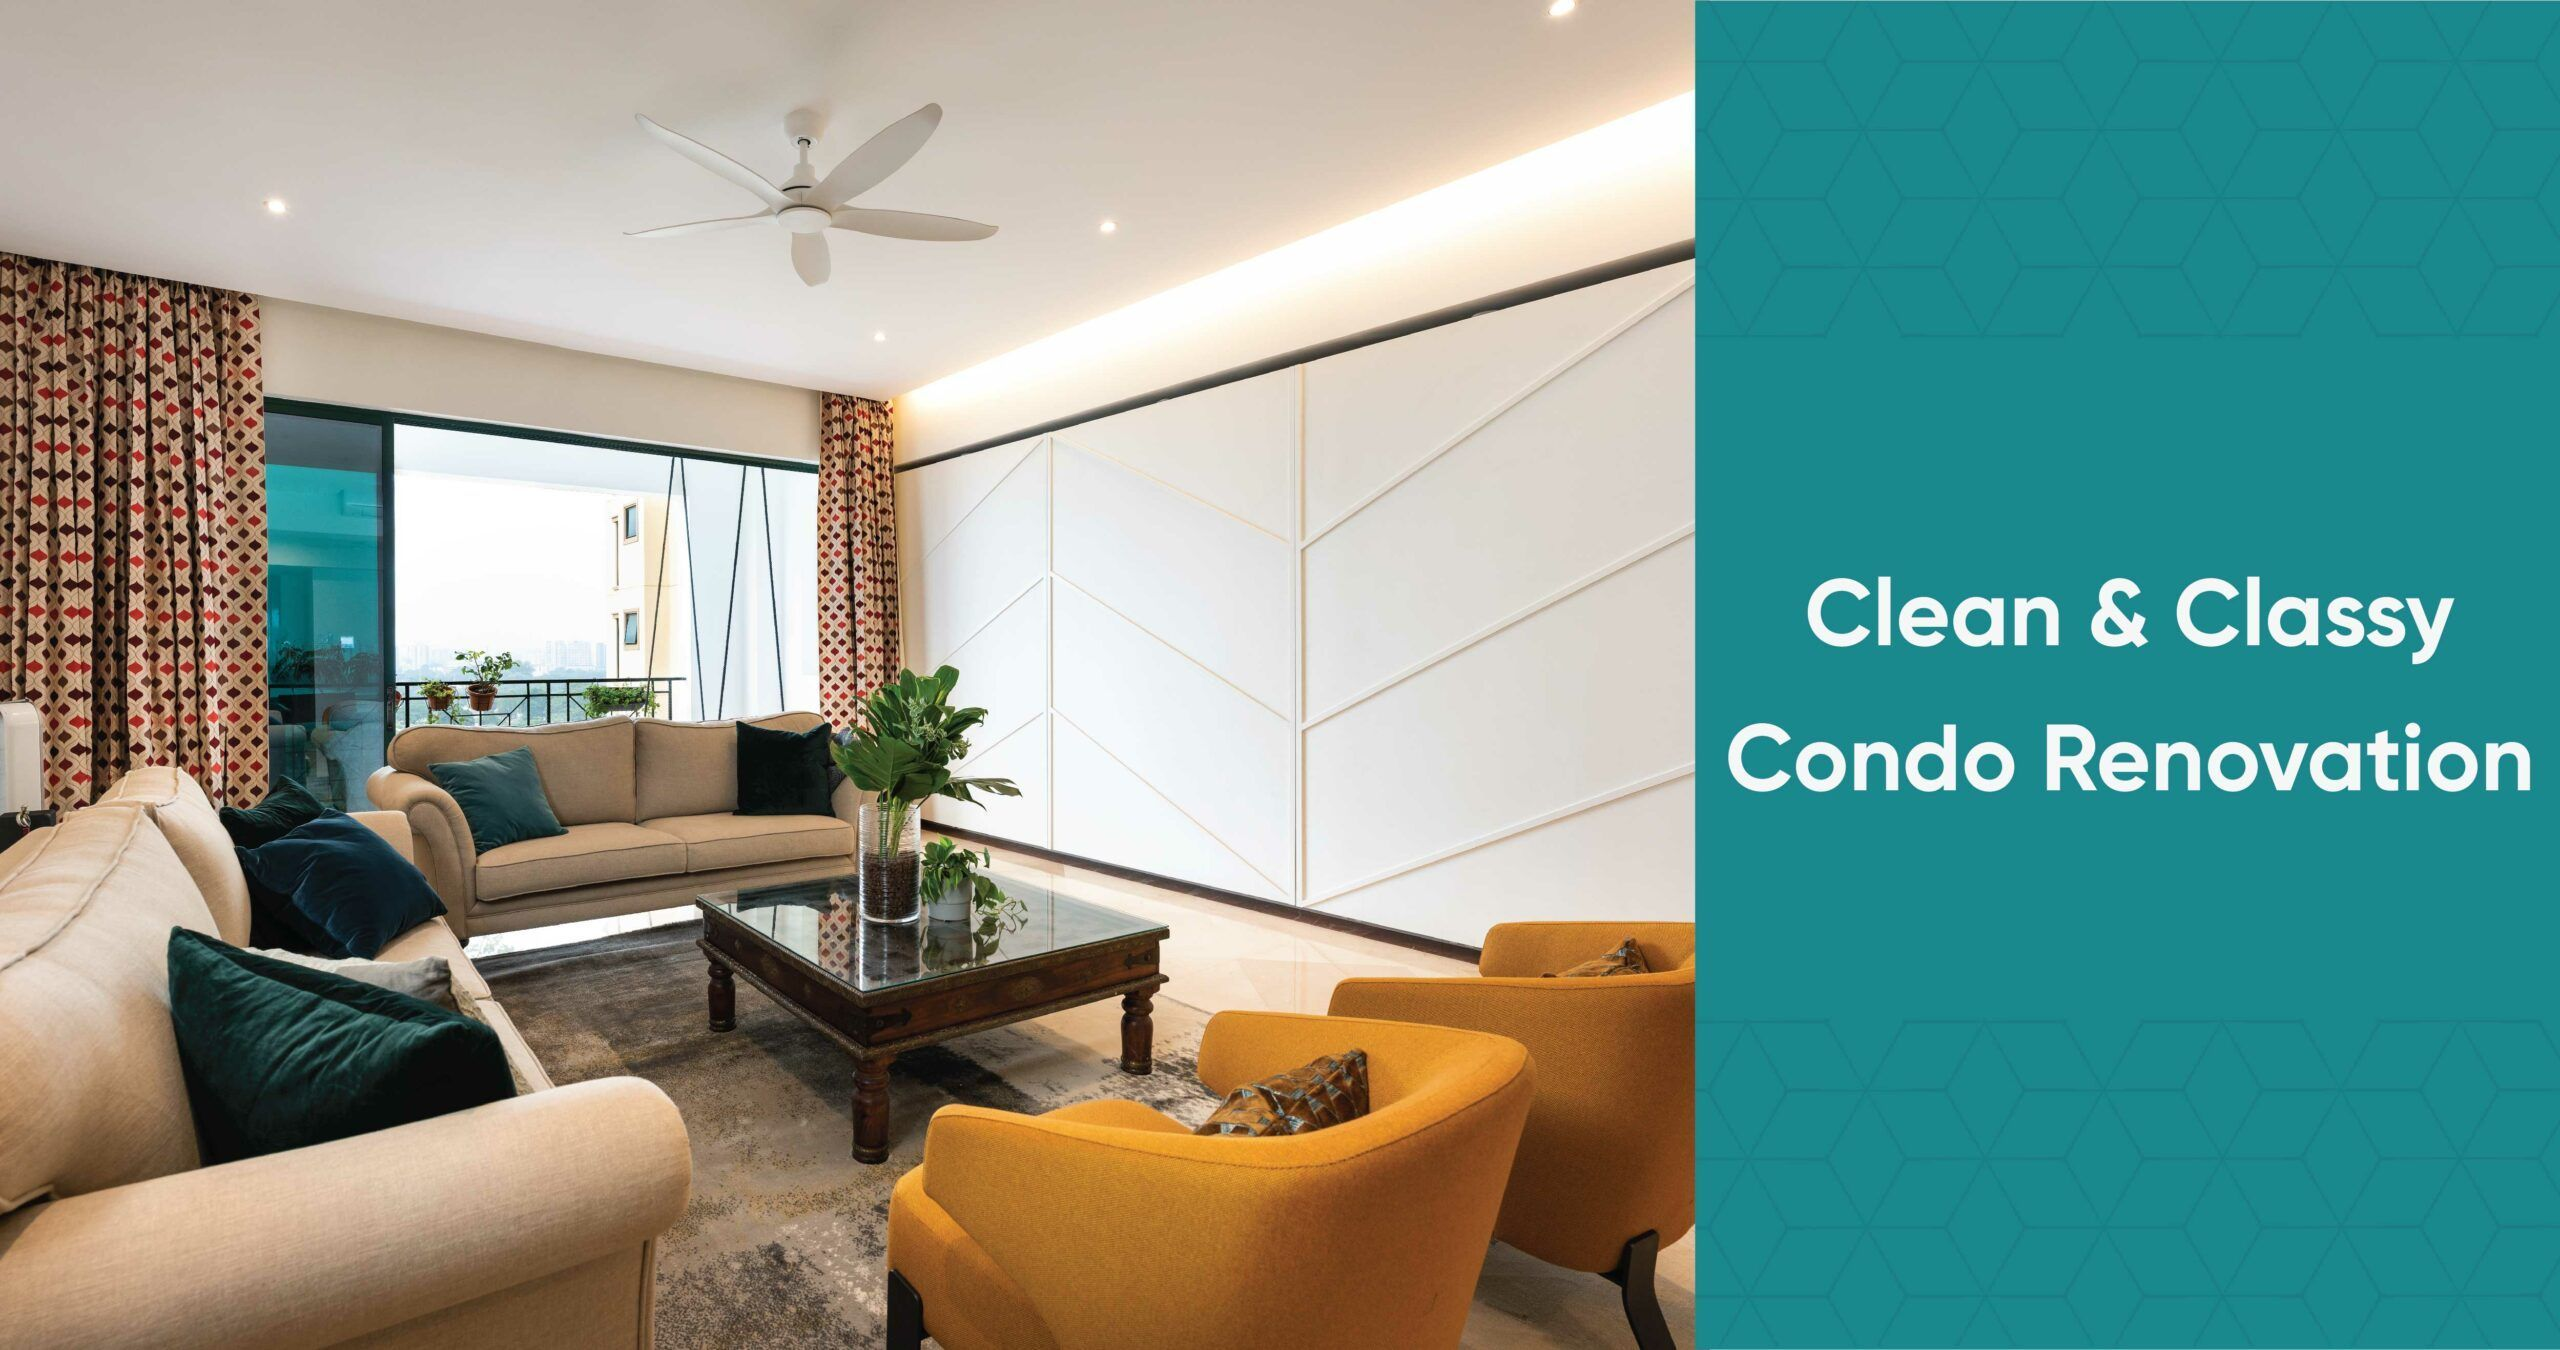 Muted Colours & Elegant Detailing for this 4-room Condo